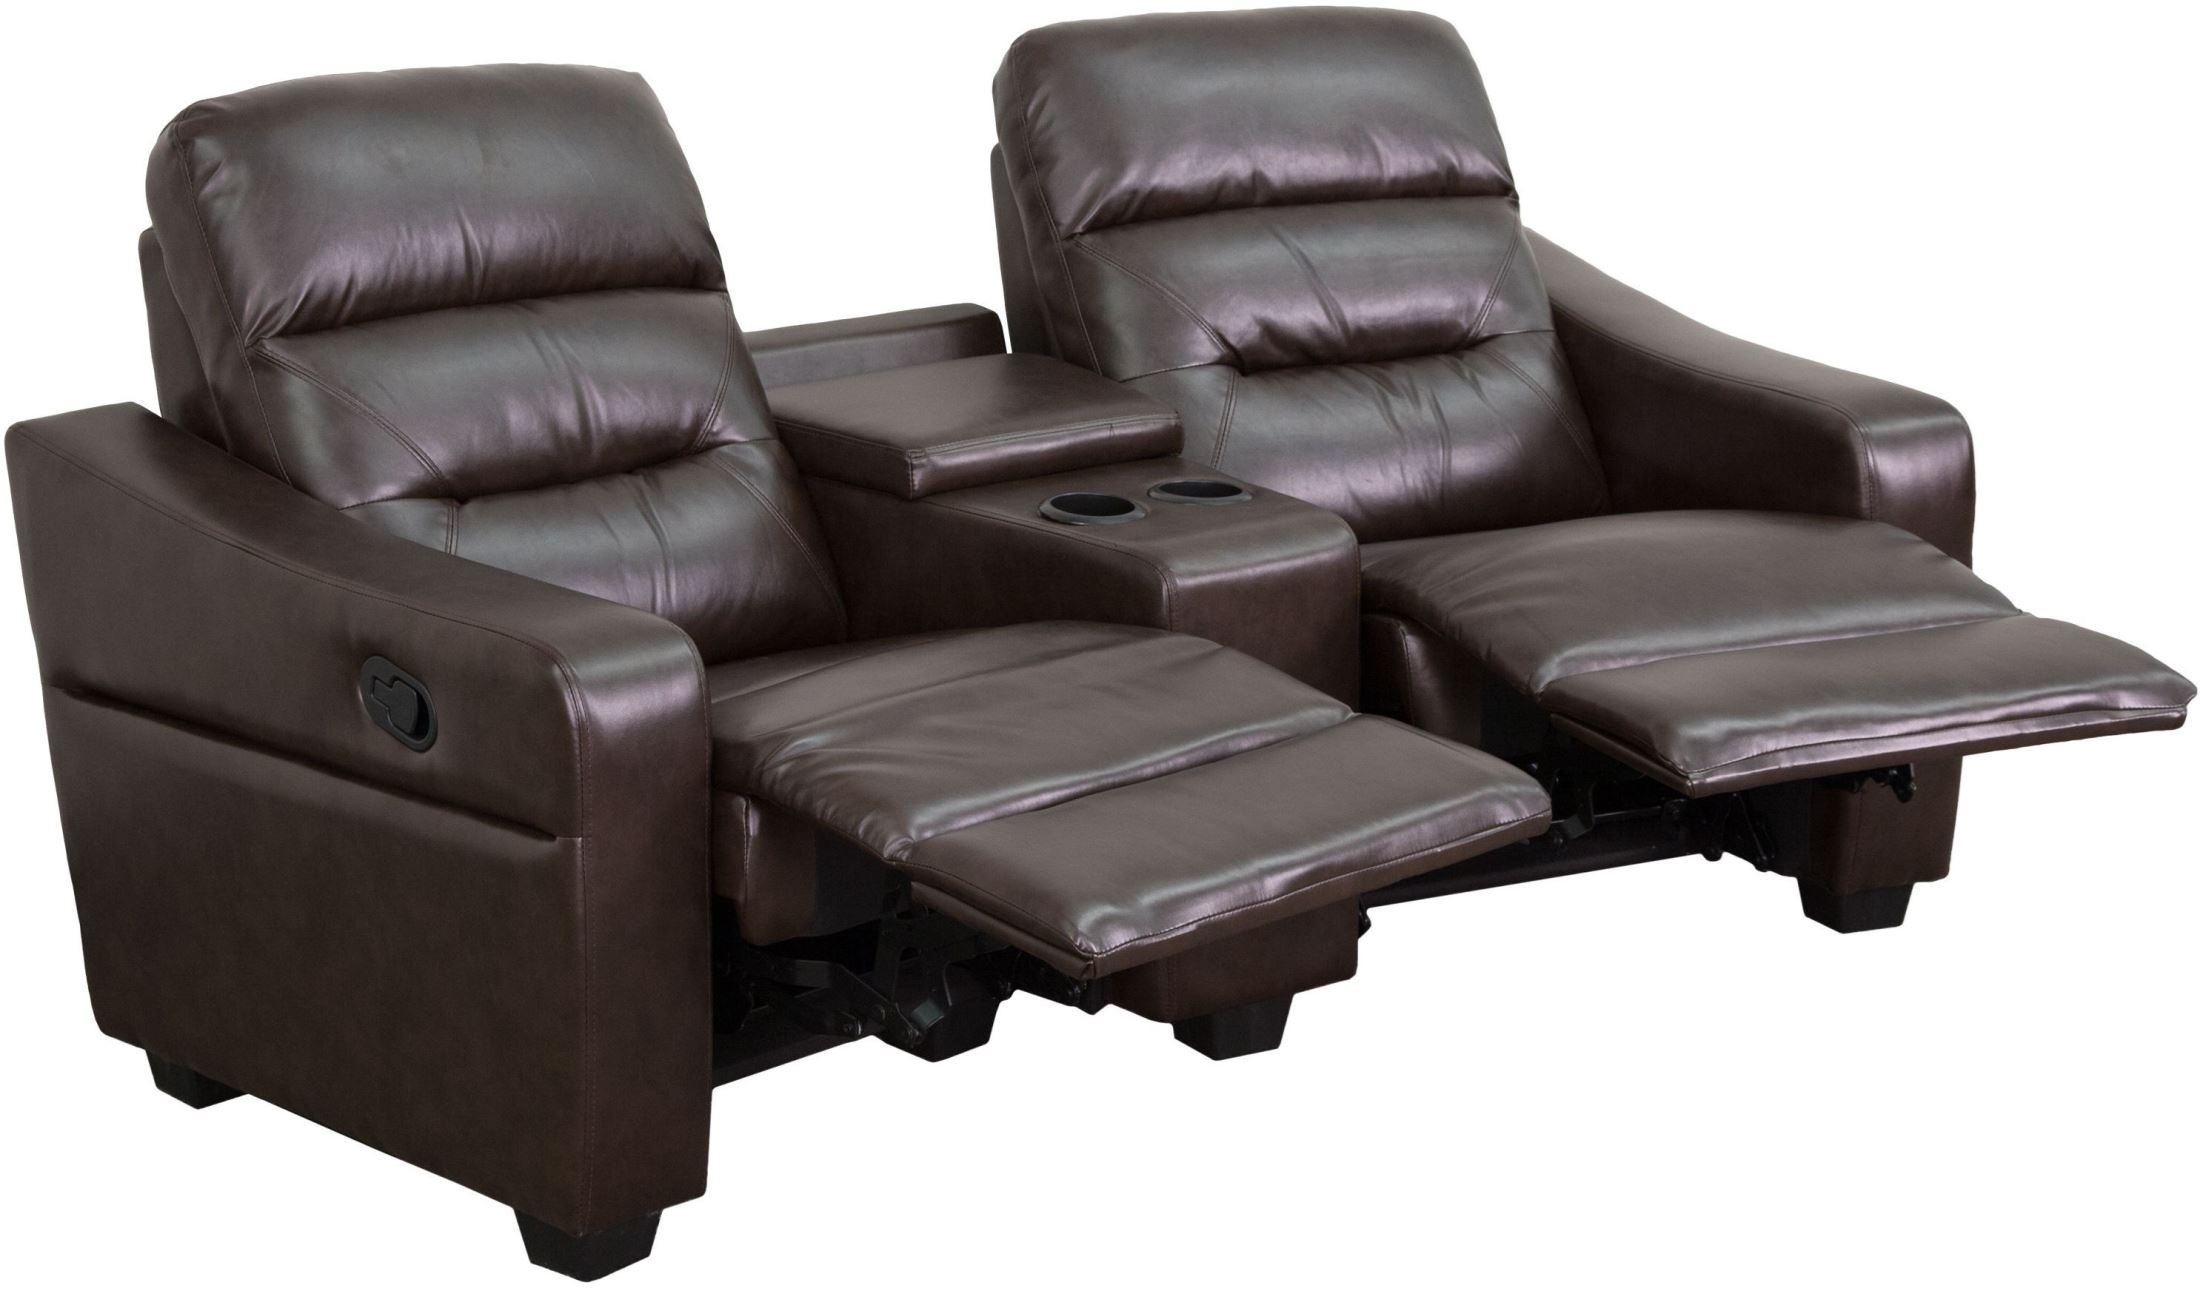 2 seat theater chairs modern mid century chair futura series reclining brown leather